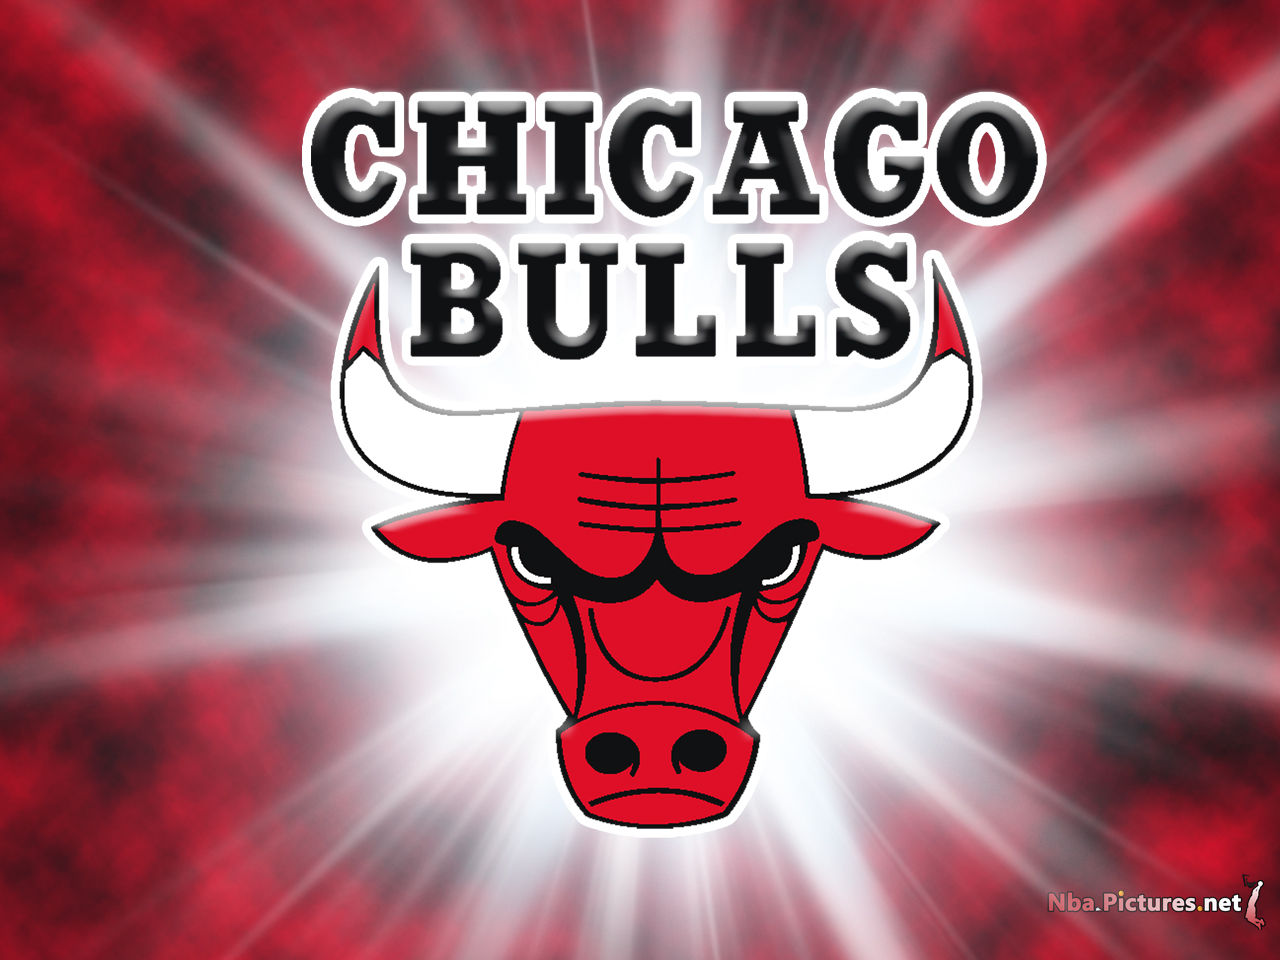 212-Snitch-Claims-Chicago-Bulls-Played-High-1